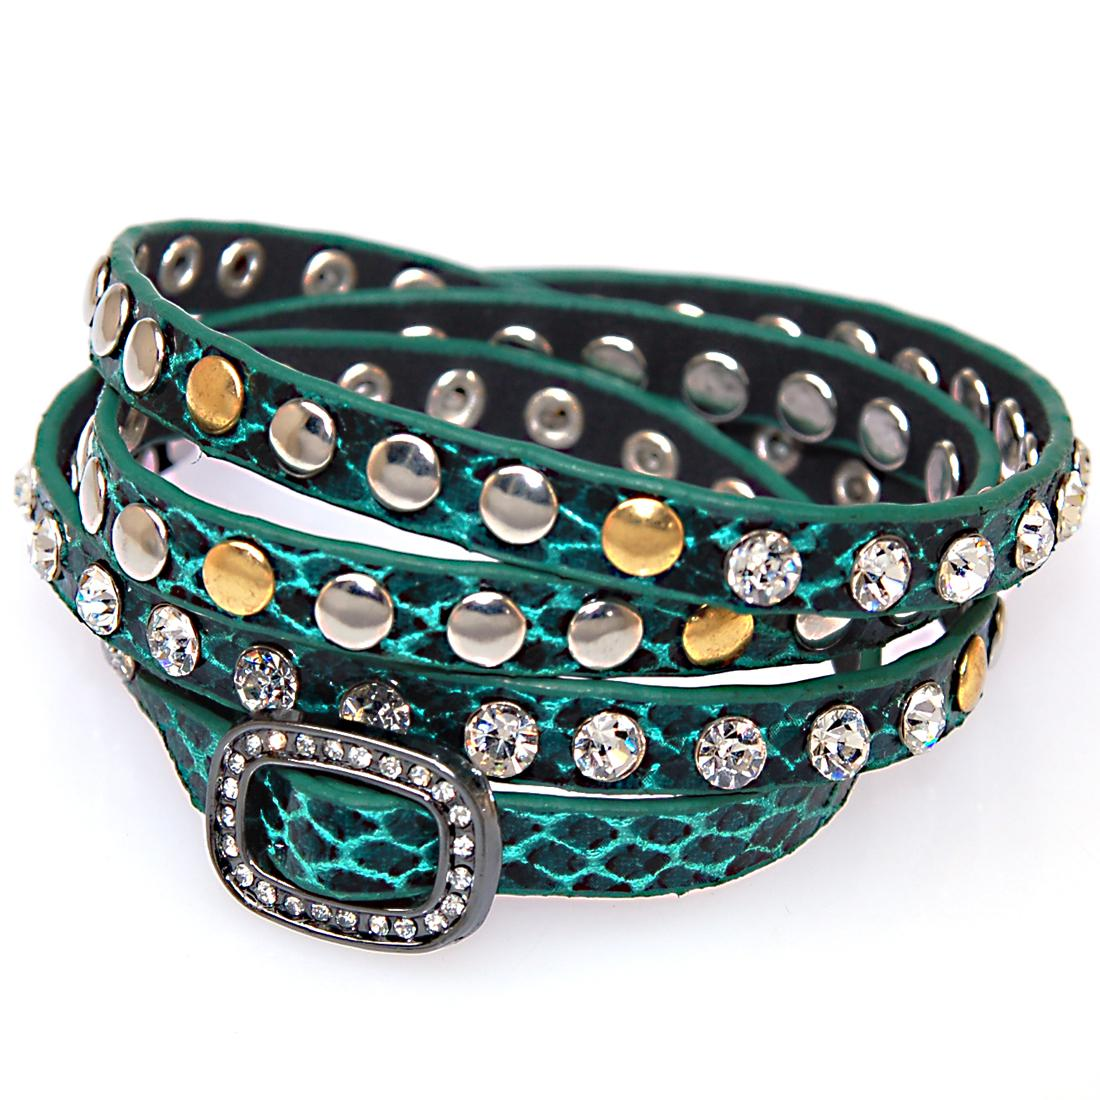 Double Wrap leather wrap bracelet,wrap Bracelets with crystal buckle,wrapped studded Bracelets with crystal and metal rivet